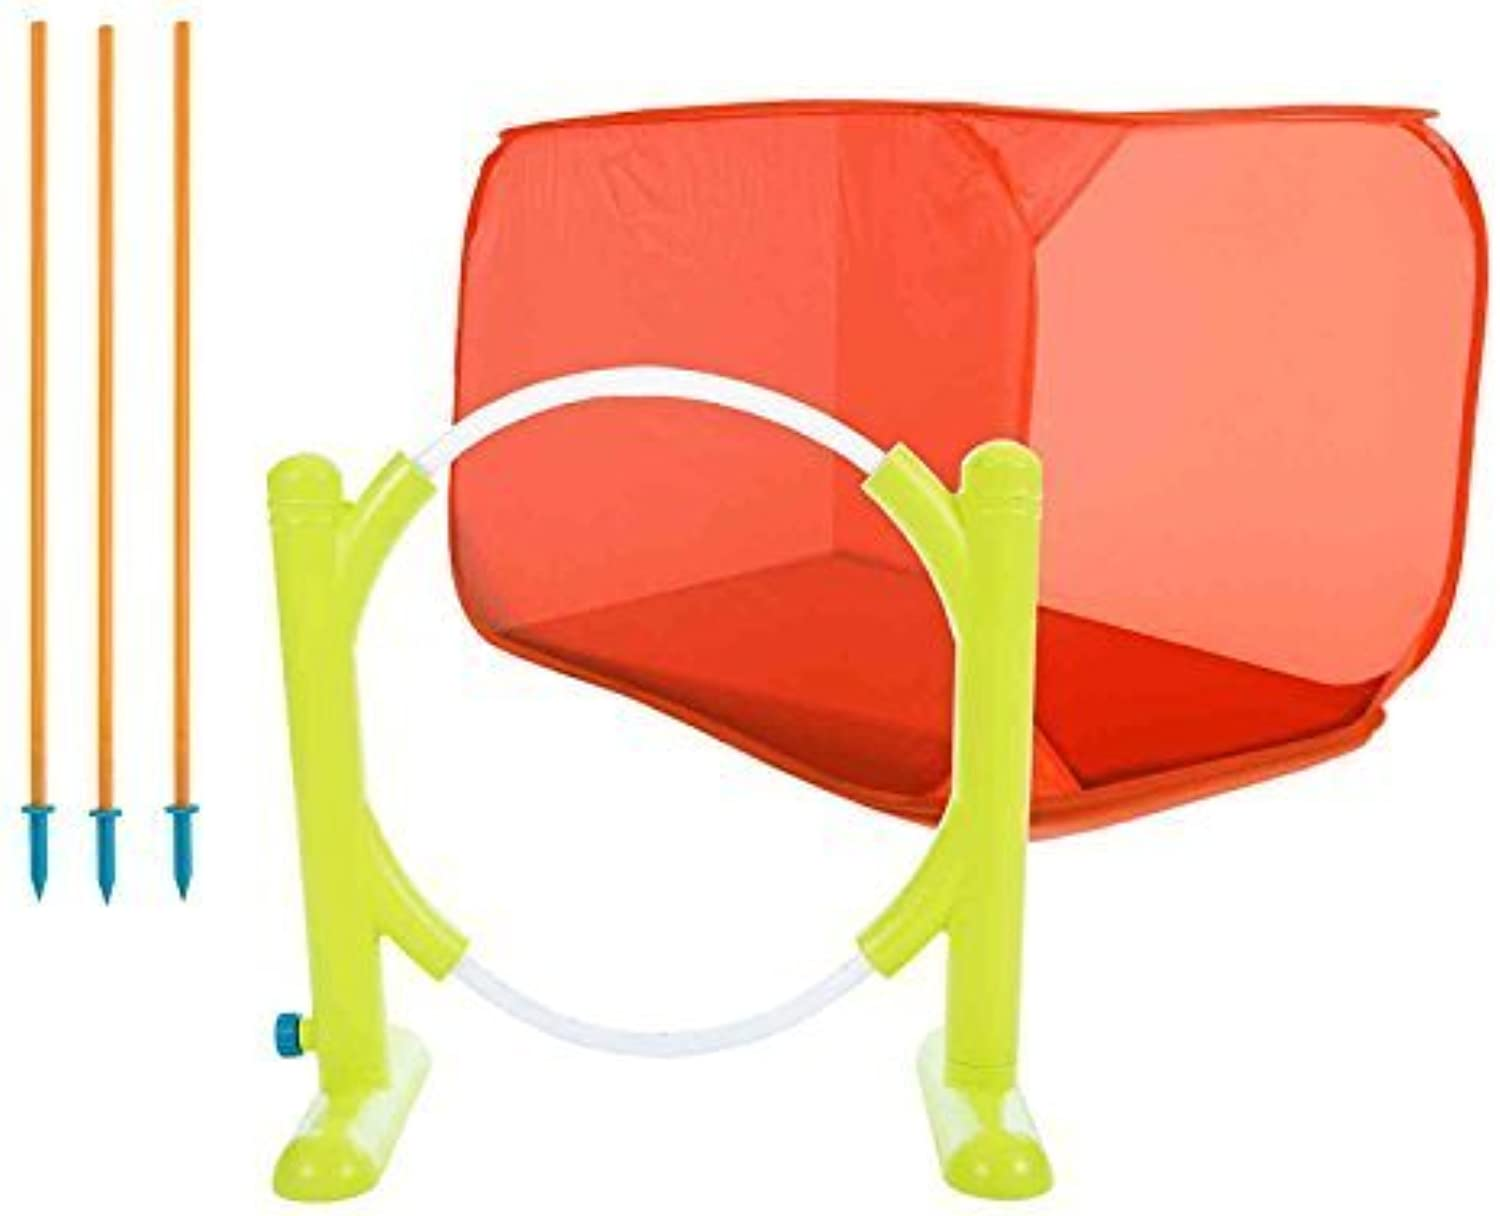 Outward Hound Kyjen 42004 Dash and Splash Agility Kit, Large, Multicolor by Kyjen